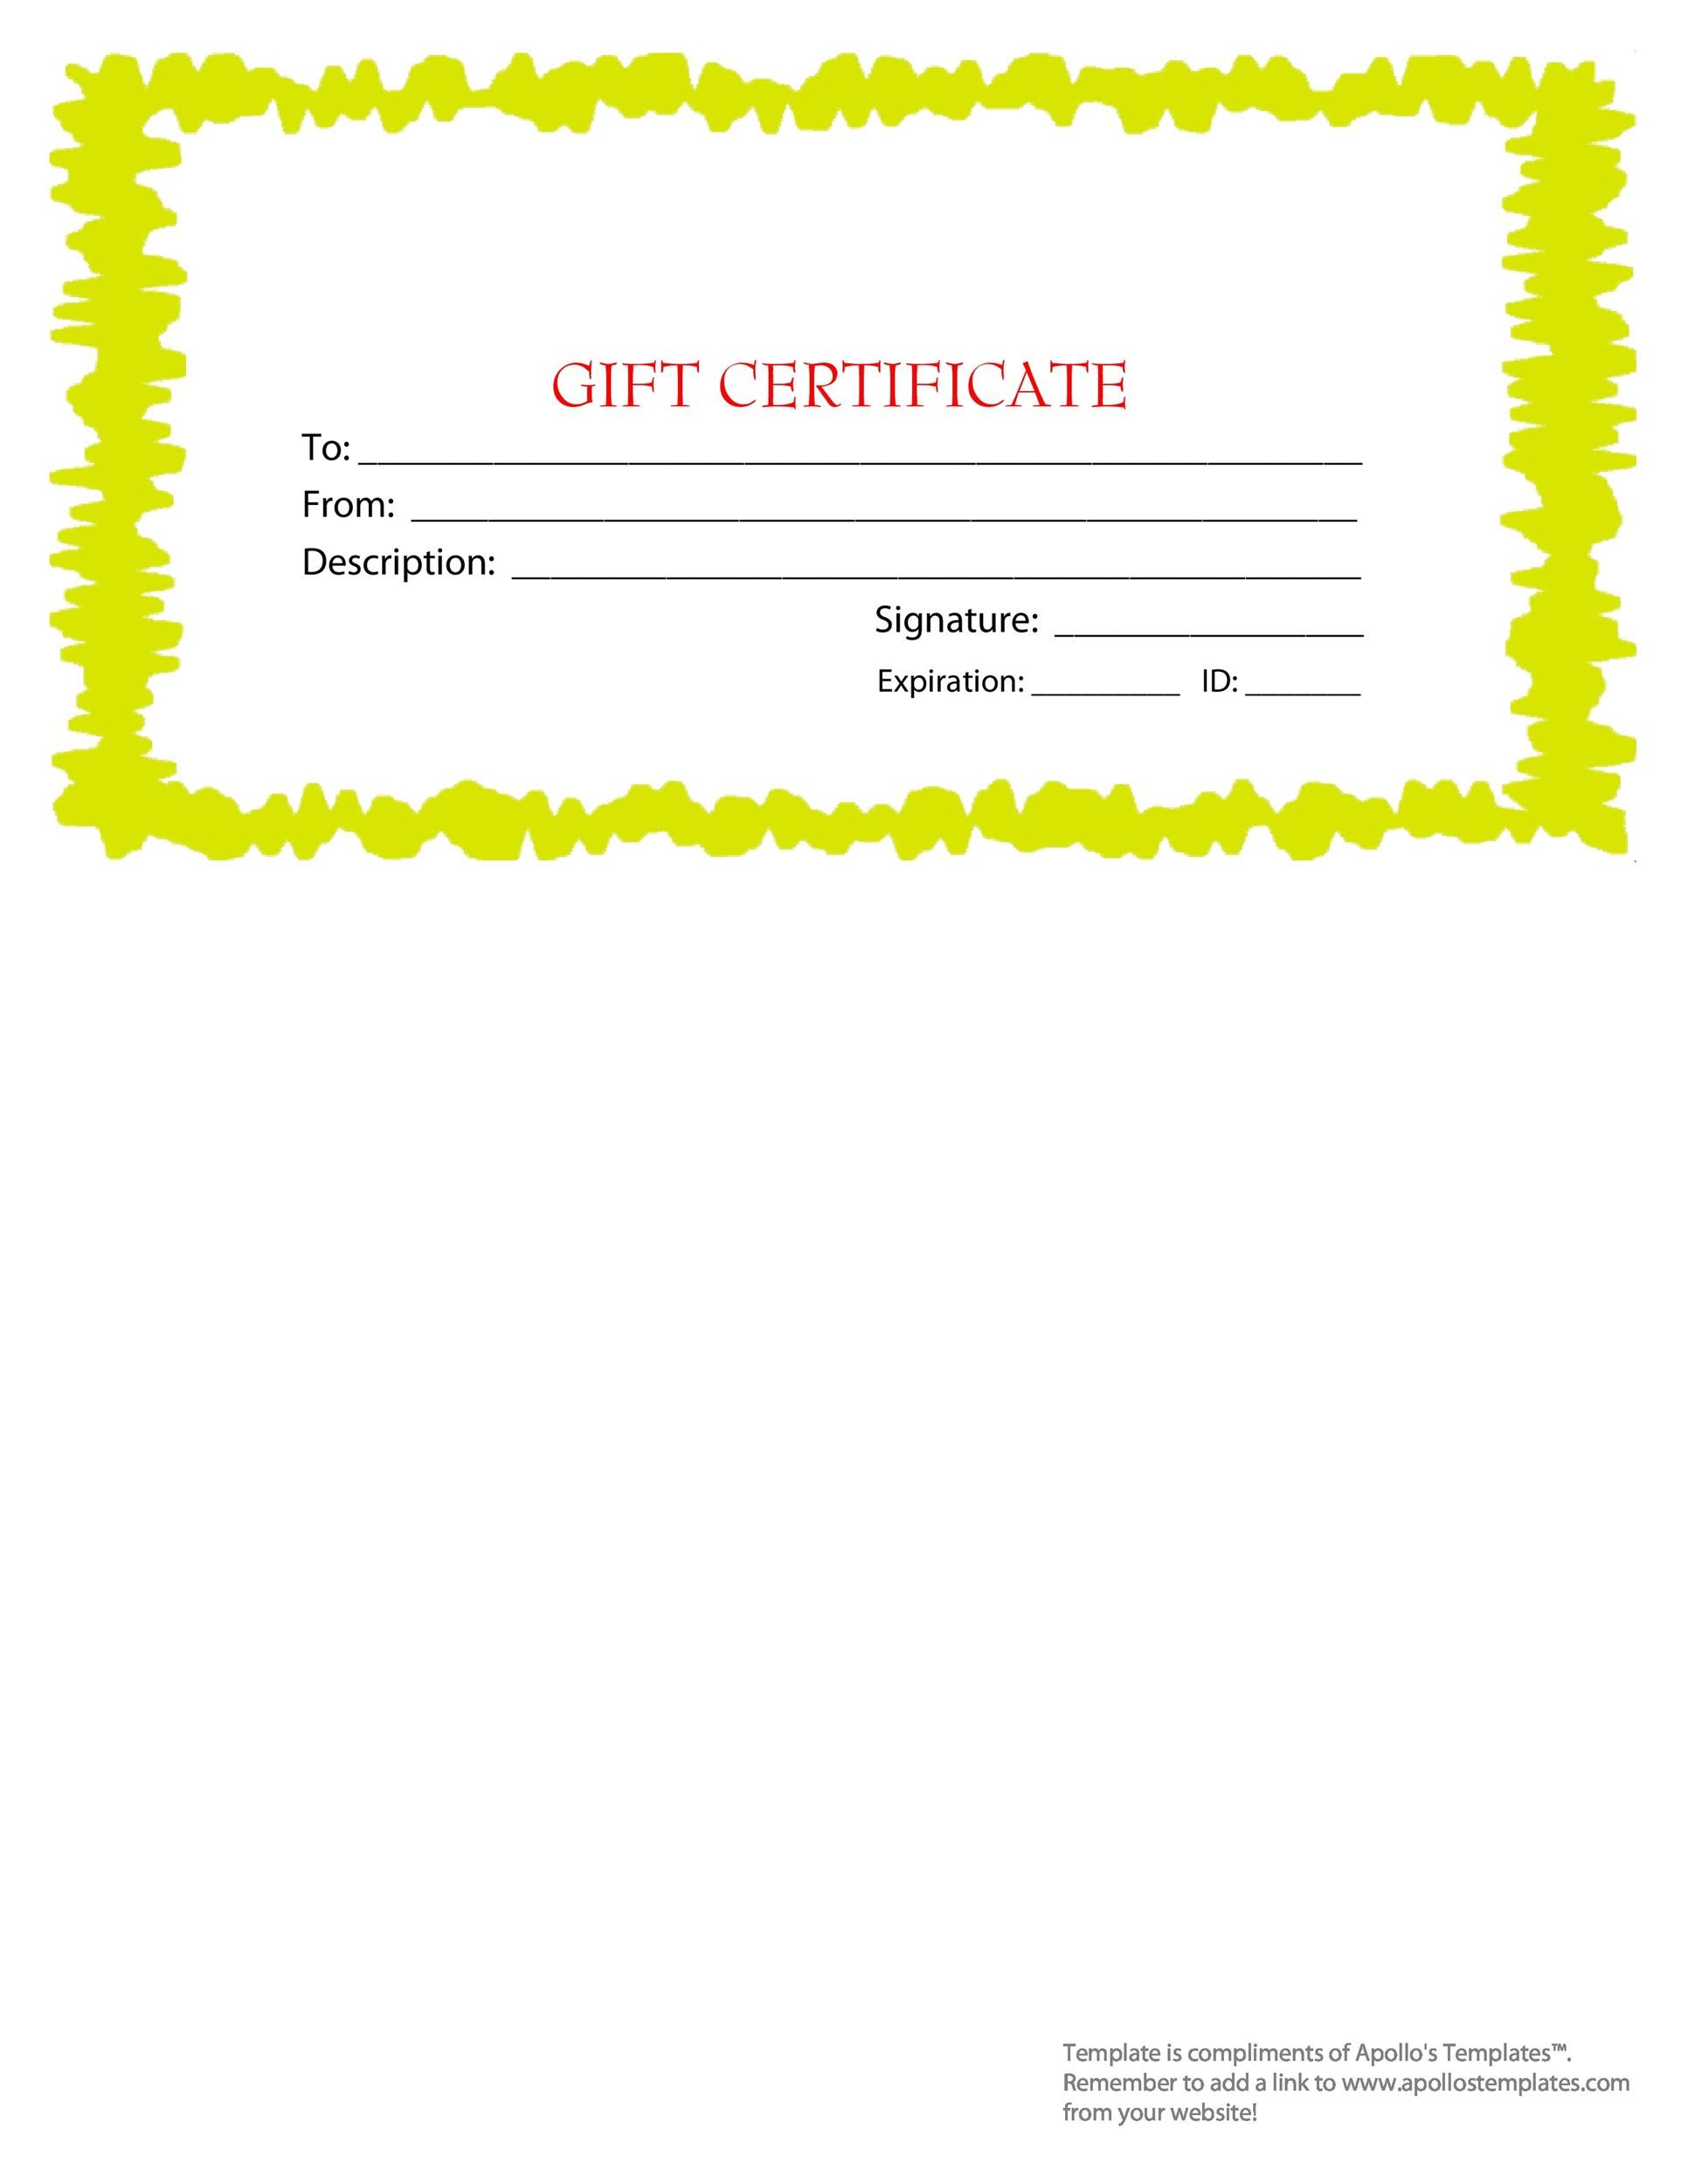 Gift Certificate Template 38